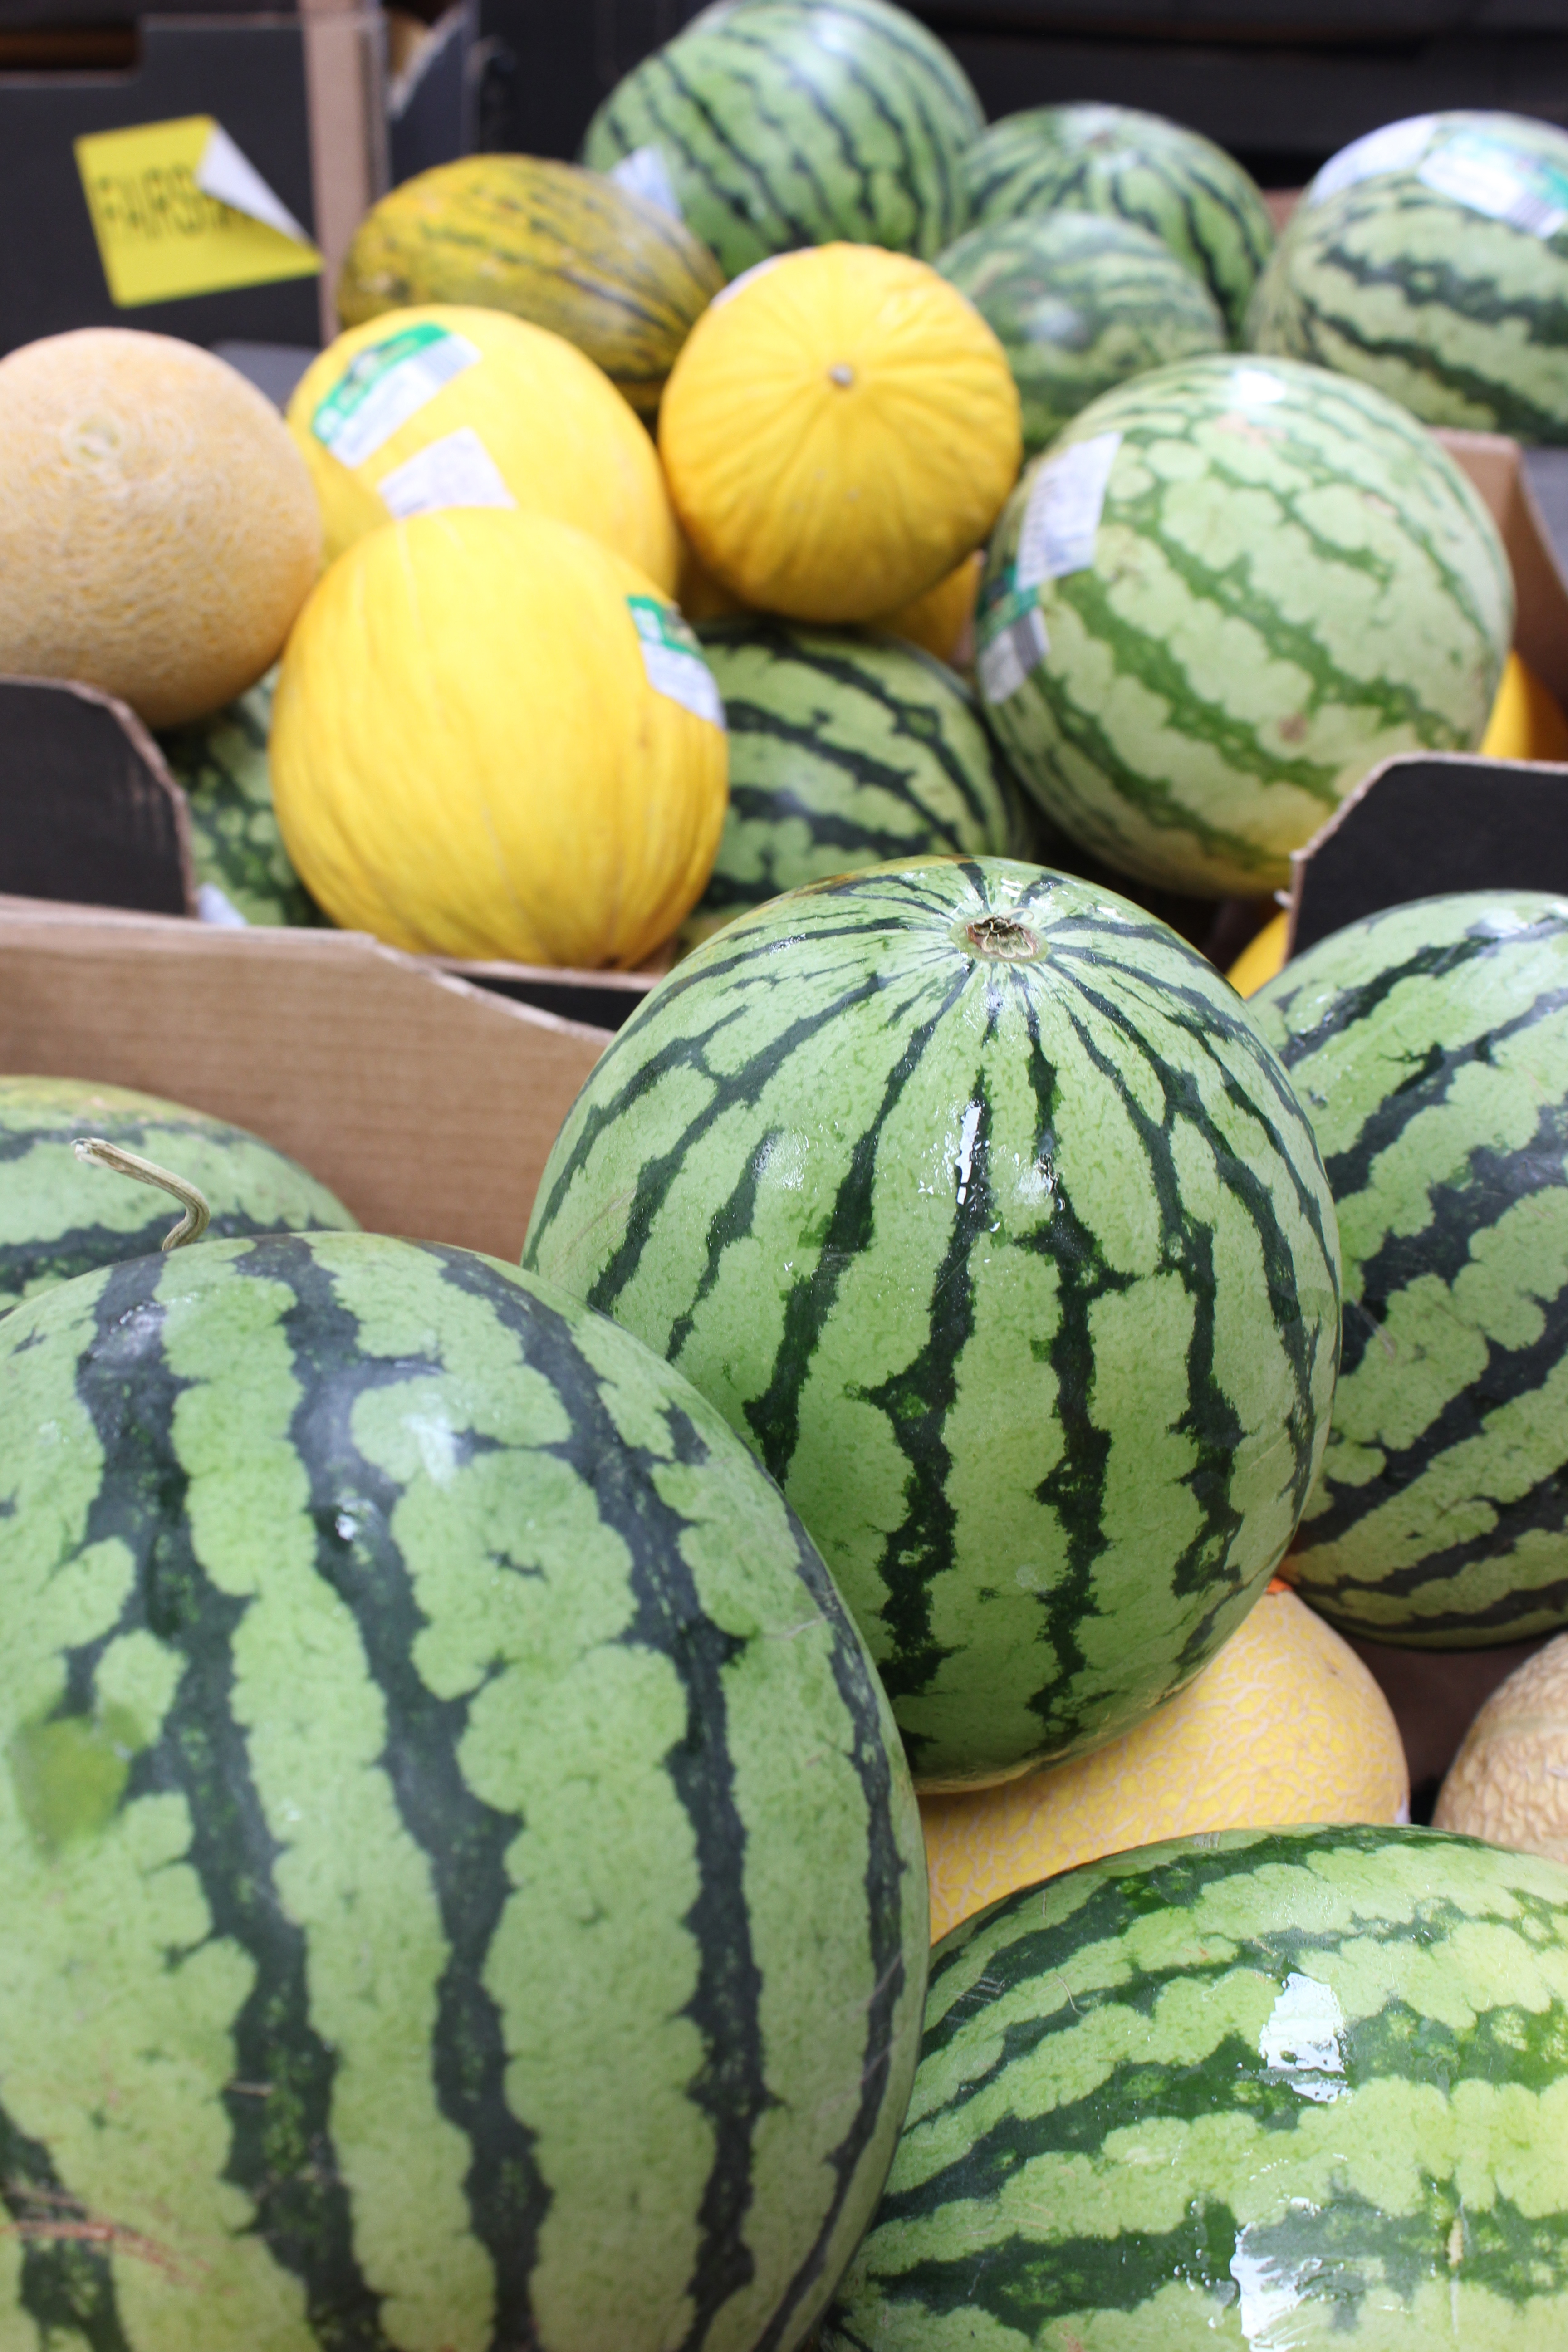 Melons from Mack at FareShare warehouse